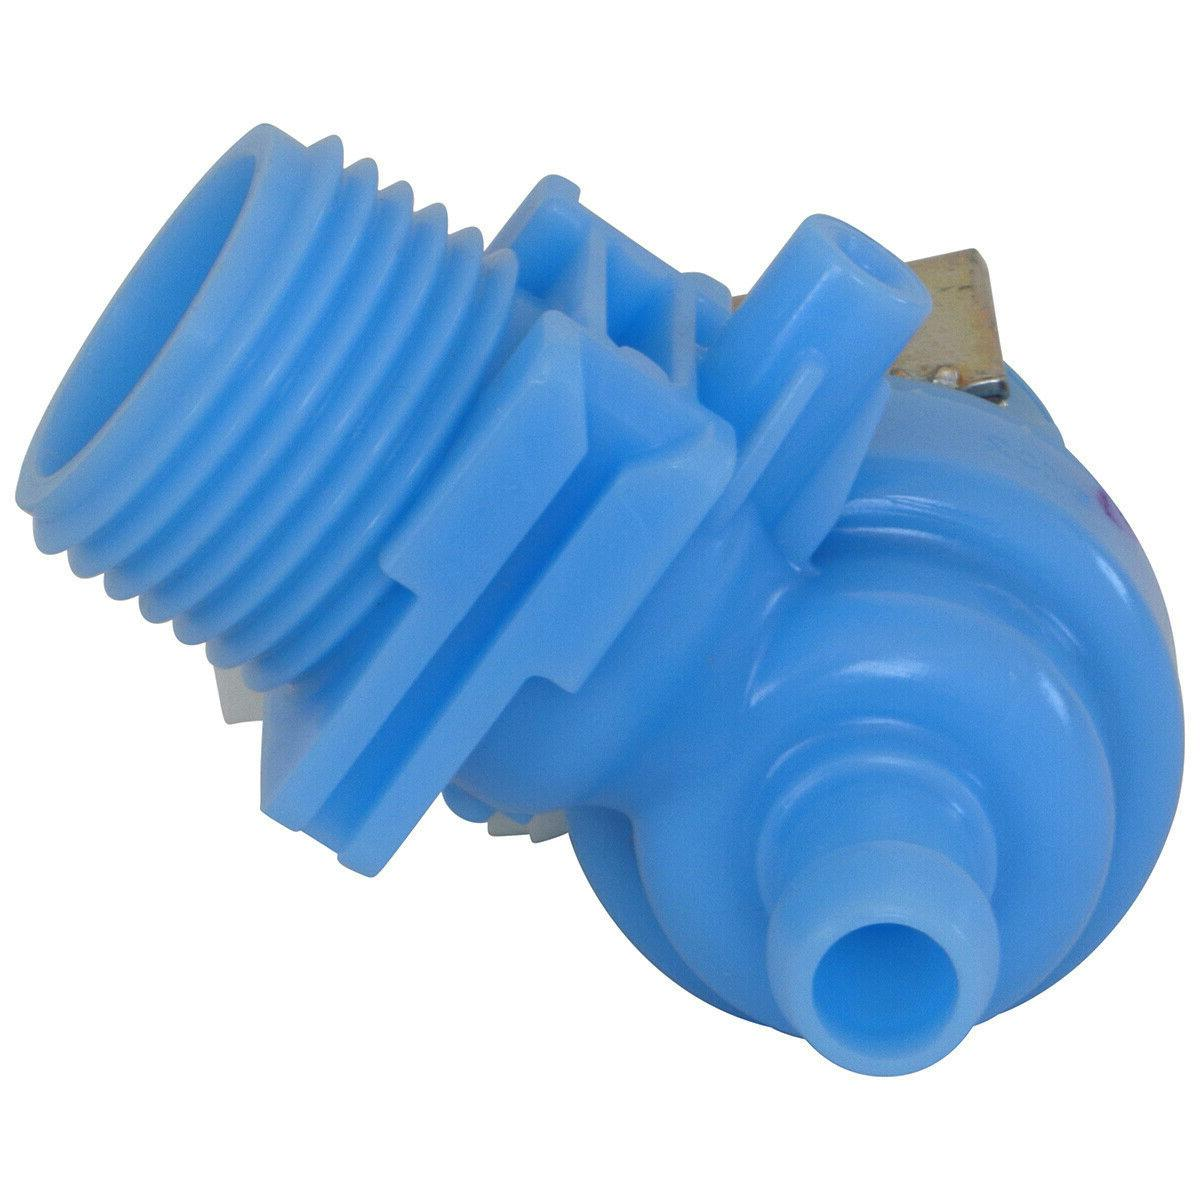 Endurance Pro Inlet for Whirlpool